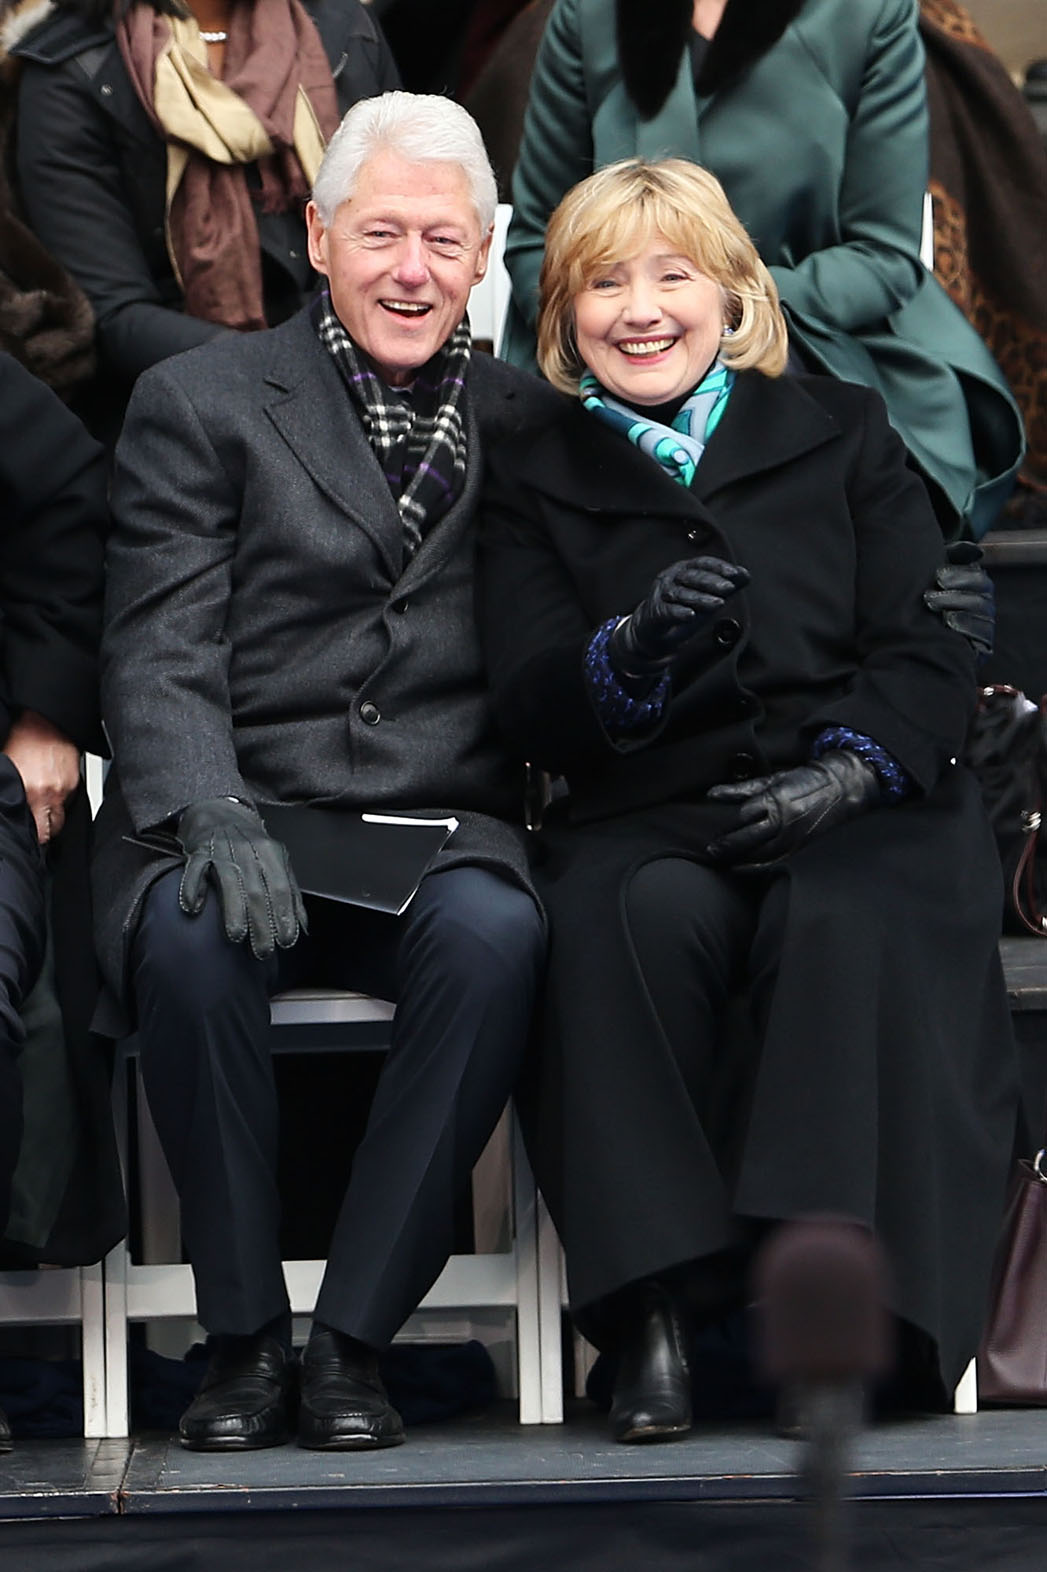 Hillary Clinton NY Mayor Inauguration - P 2013